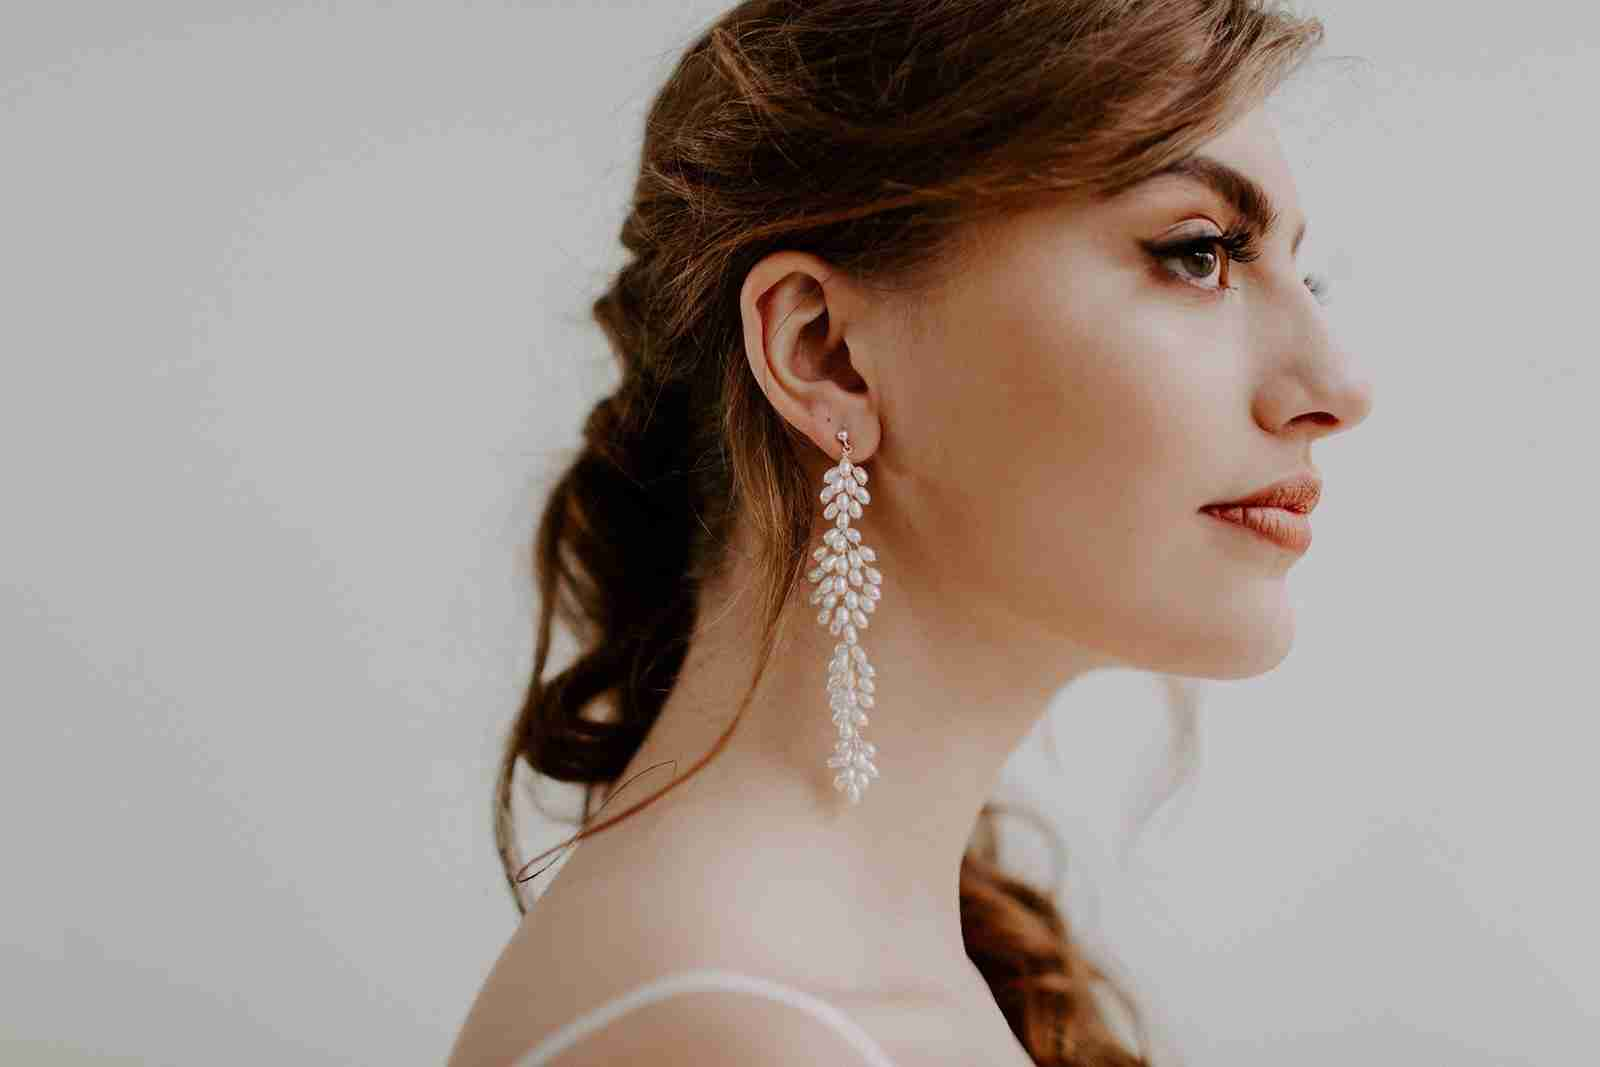 Wedding hair and makeup ideas inspiration from modern, minimalist bride shoot.